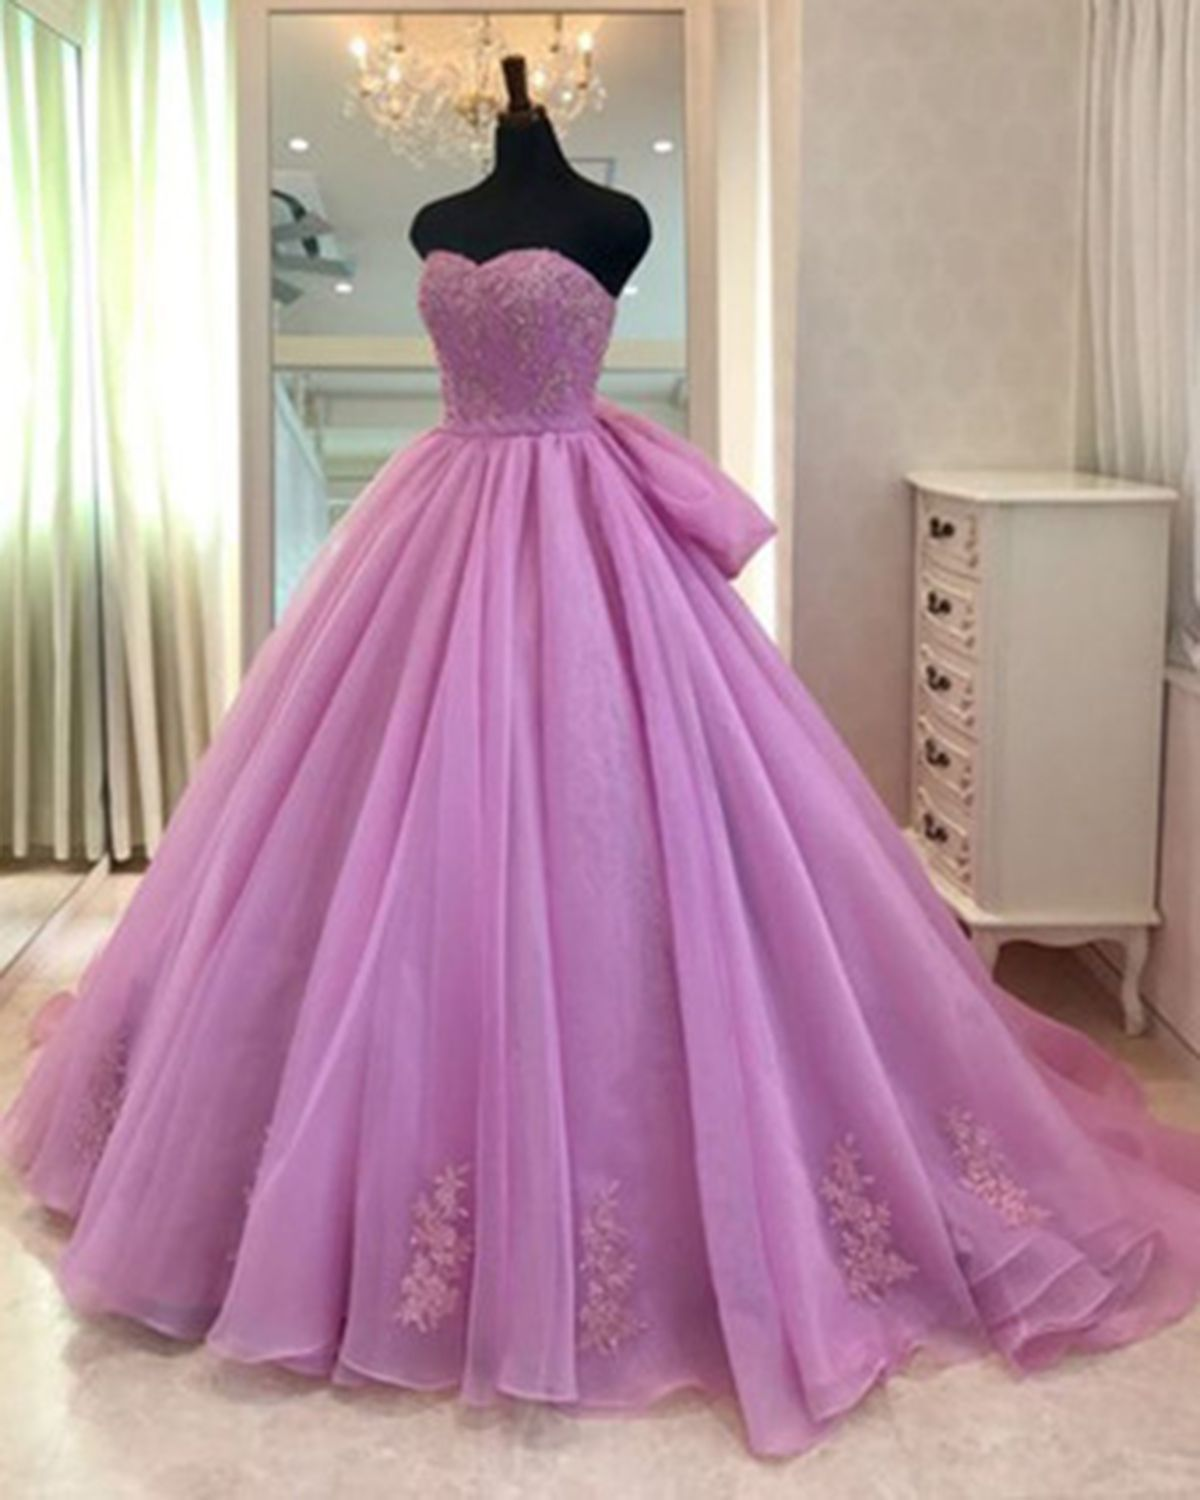 Sleeveless Lavender Ball Gown Prom Dress In 2021 Prom Dresses Ball Gown Ball Gowns Prom Evening Dresses [ 1500 x 1200 Pixel ]